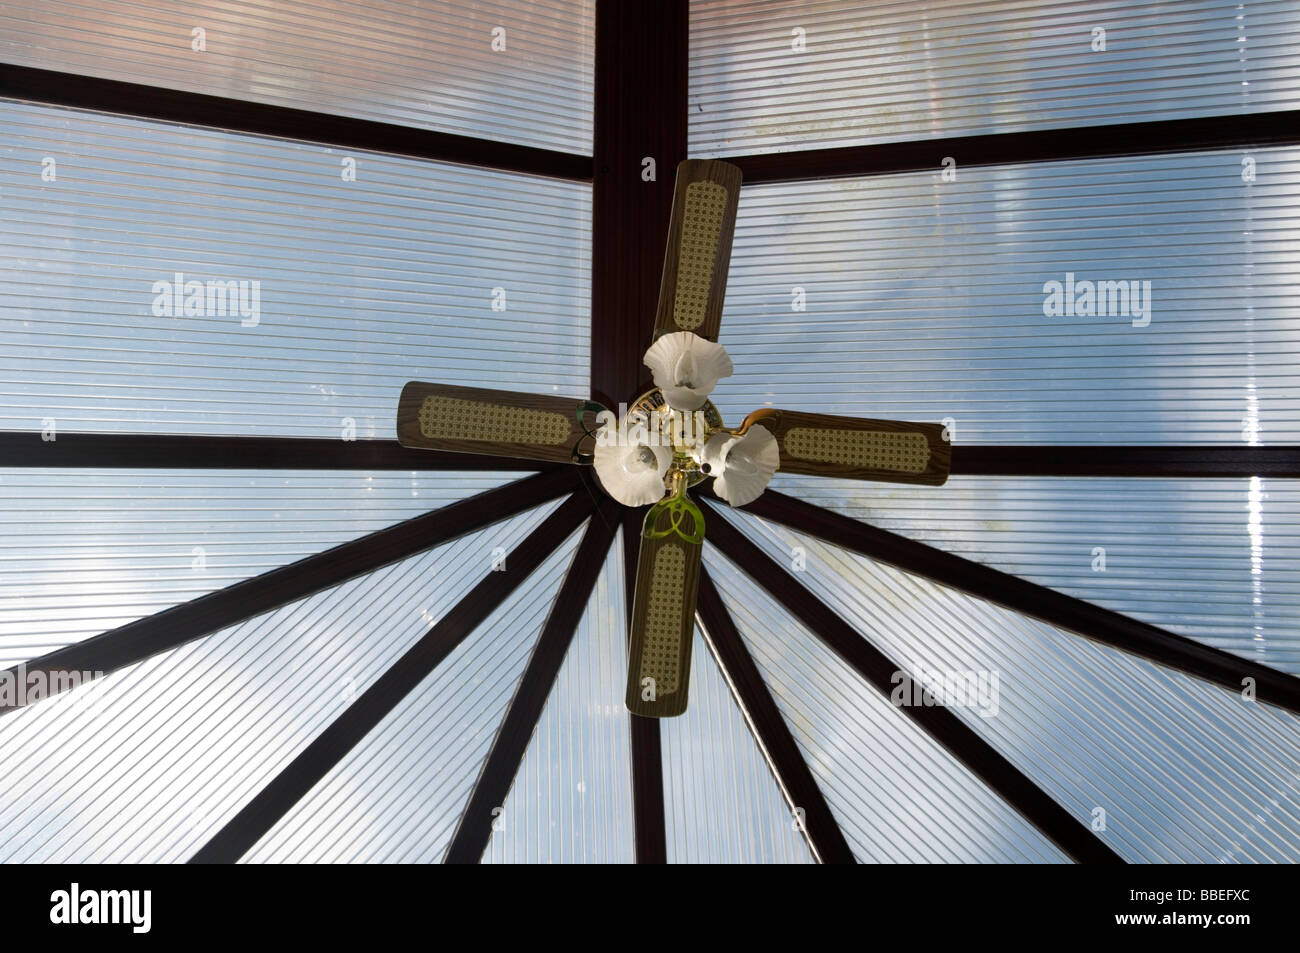 Ceiling Fan Fans Cooling Hot Cold Weather Keeping Cool Down Summer Scorcher Scorching Conservatory Conservatories